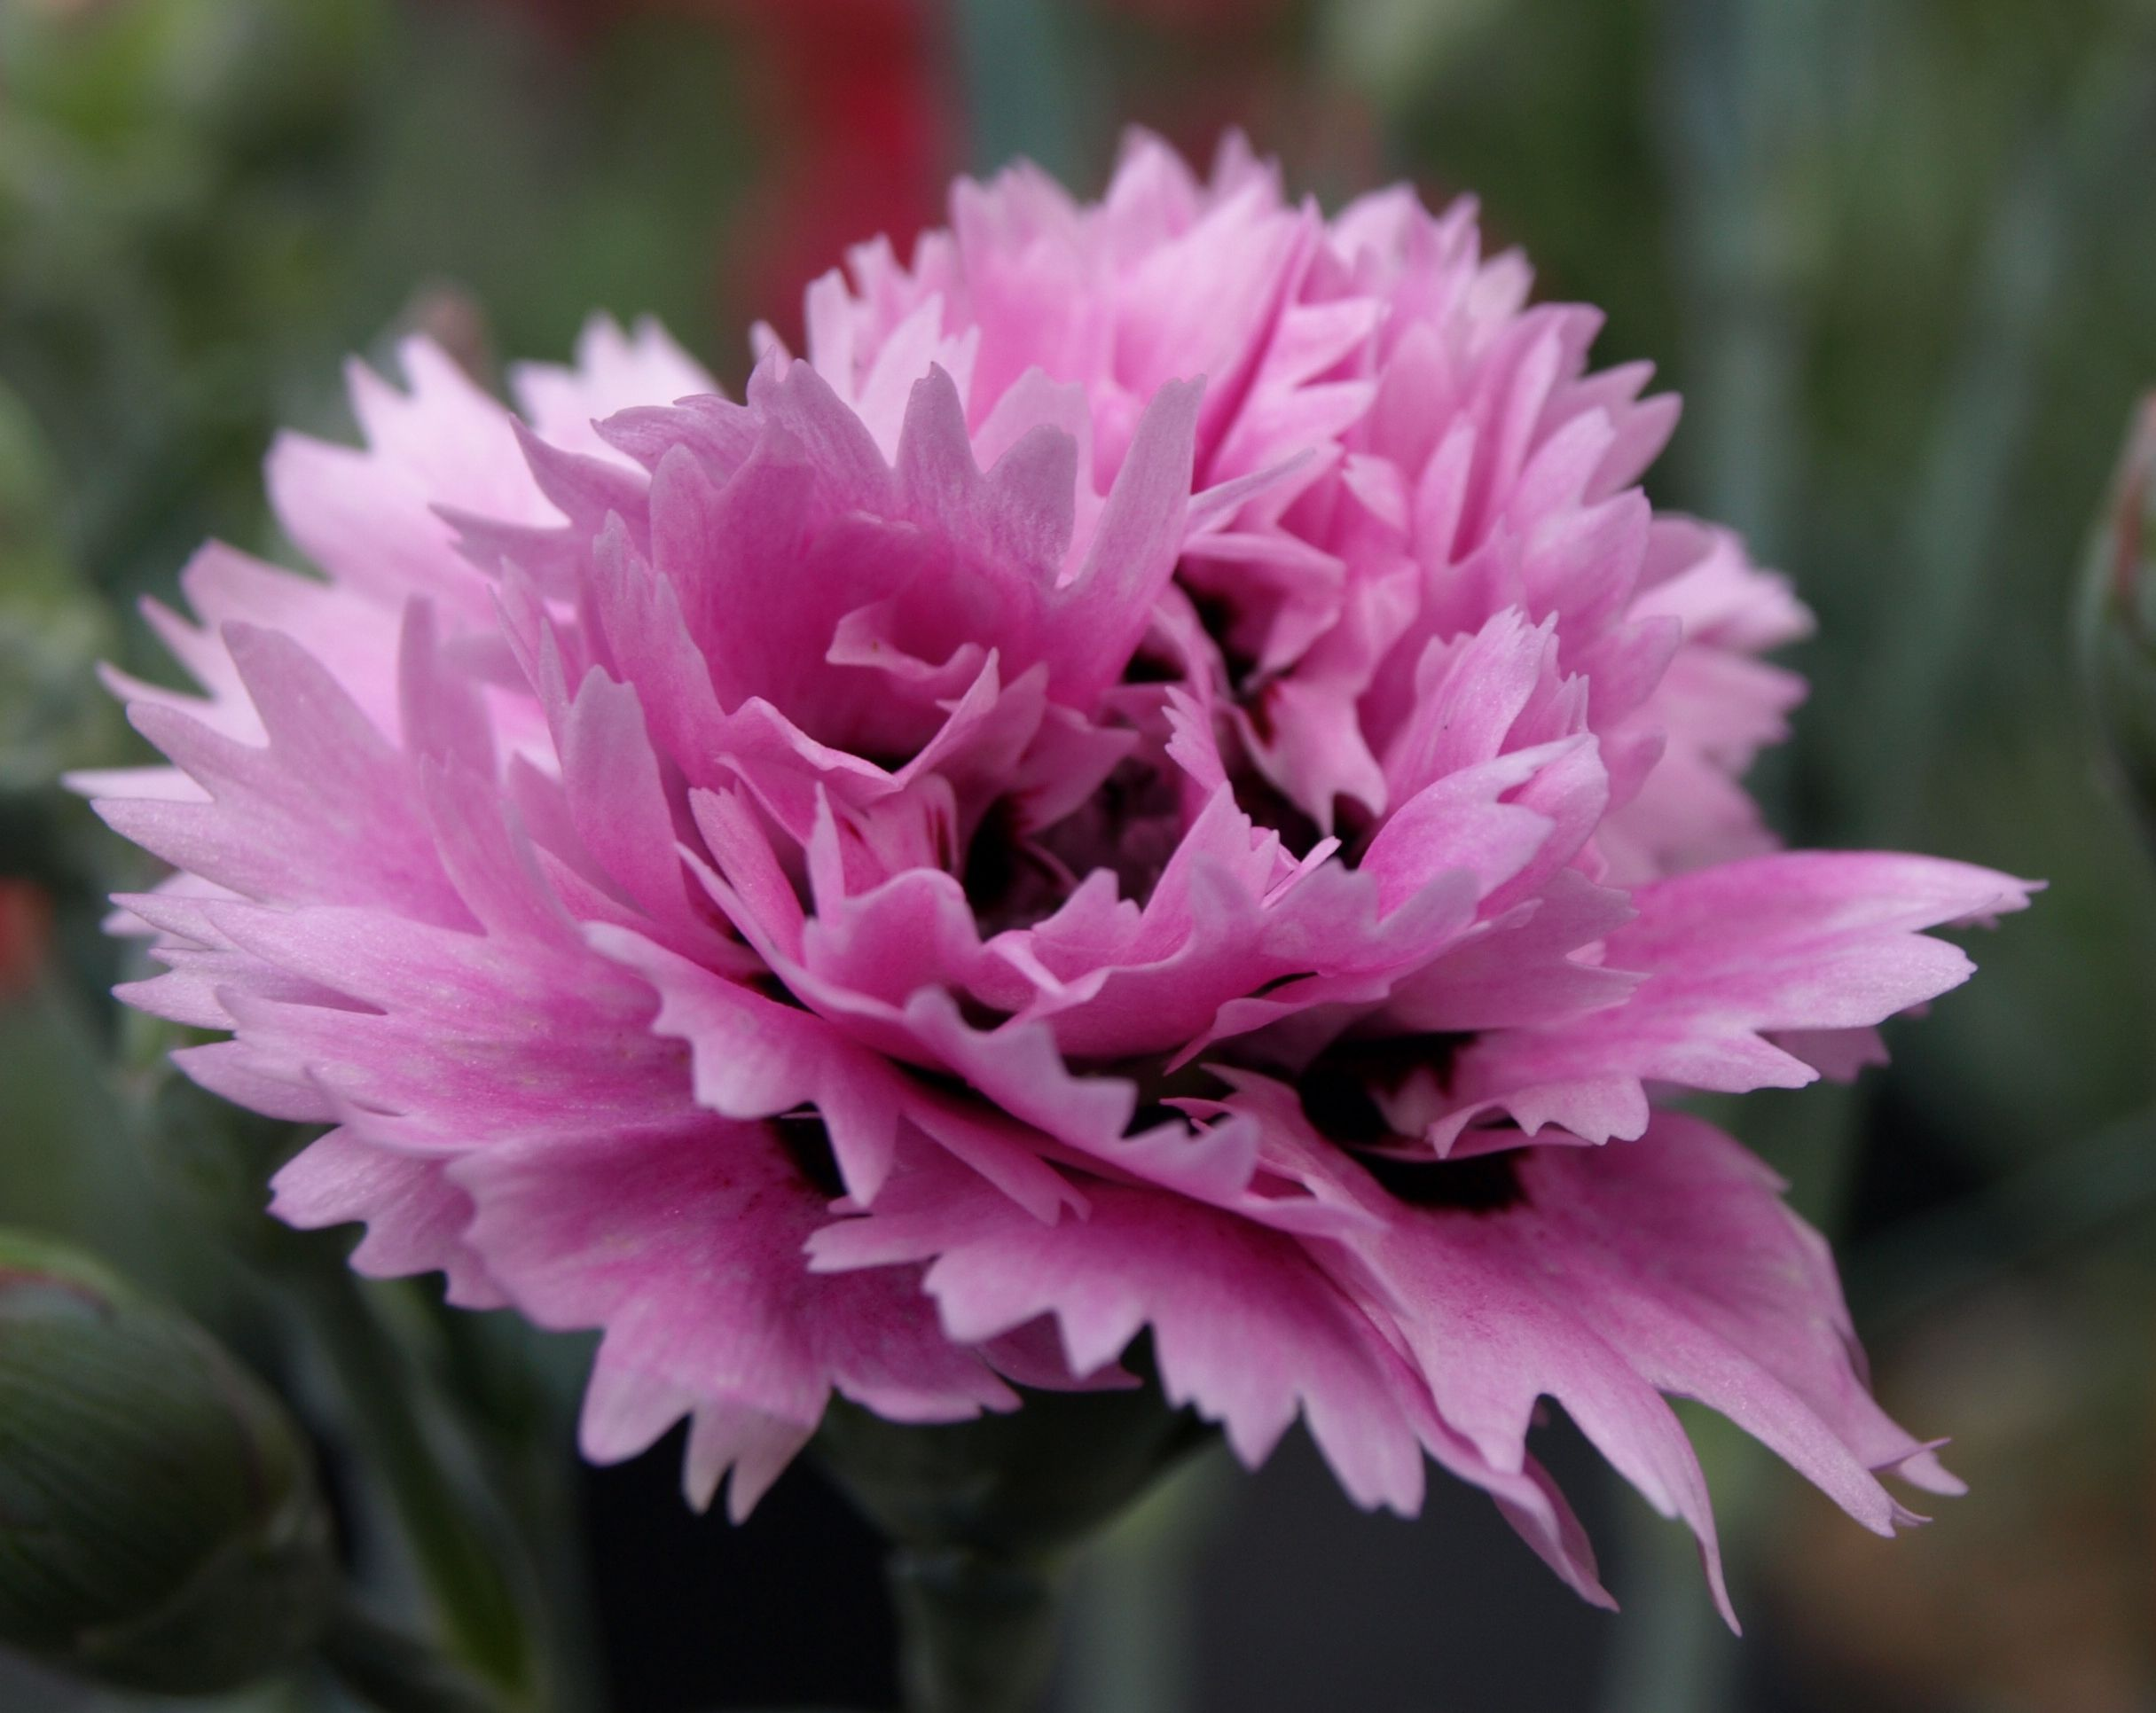 A selection of some of the Alpine Pinks I grow and sell here in East Yorkshire